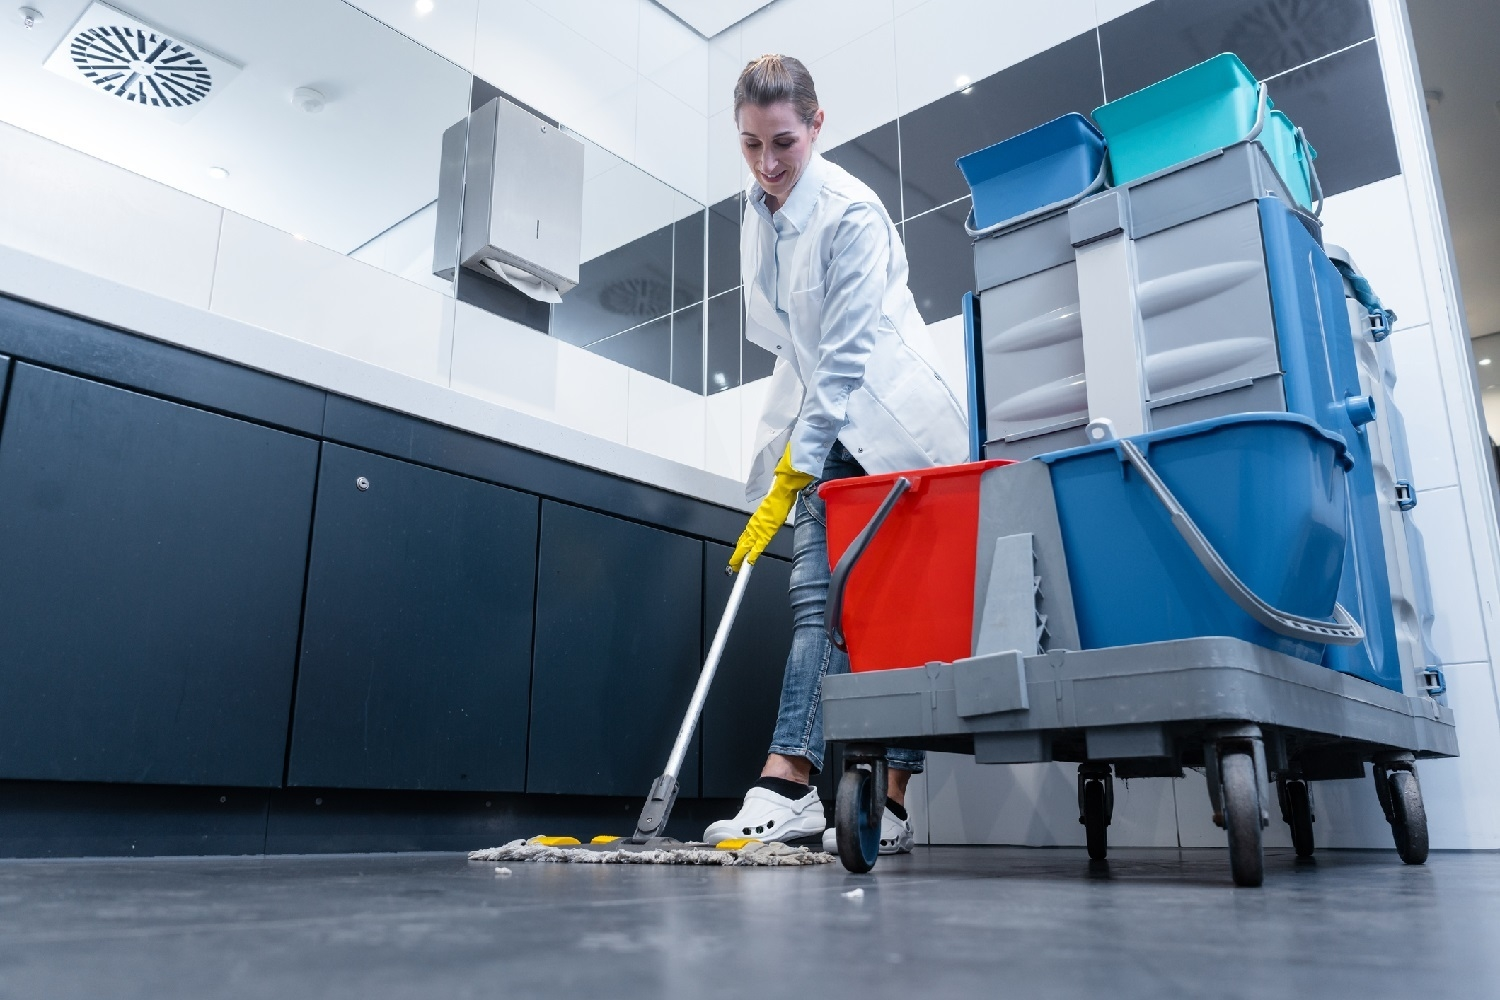 How to Start a Business: Cleaning Service - Business News Daily